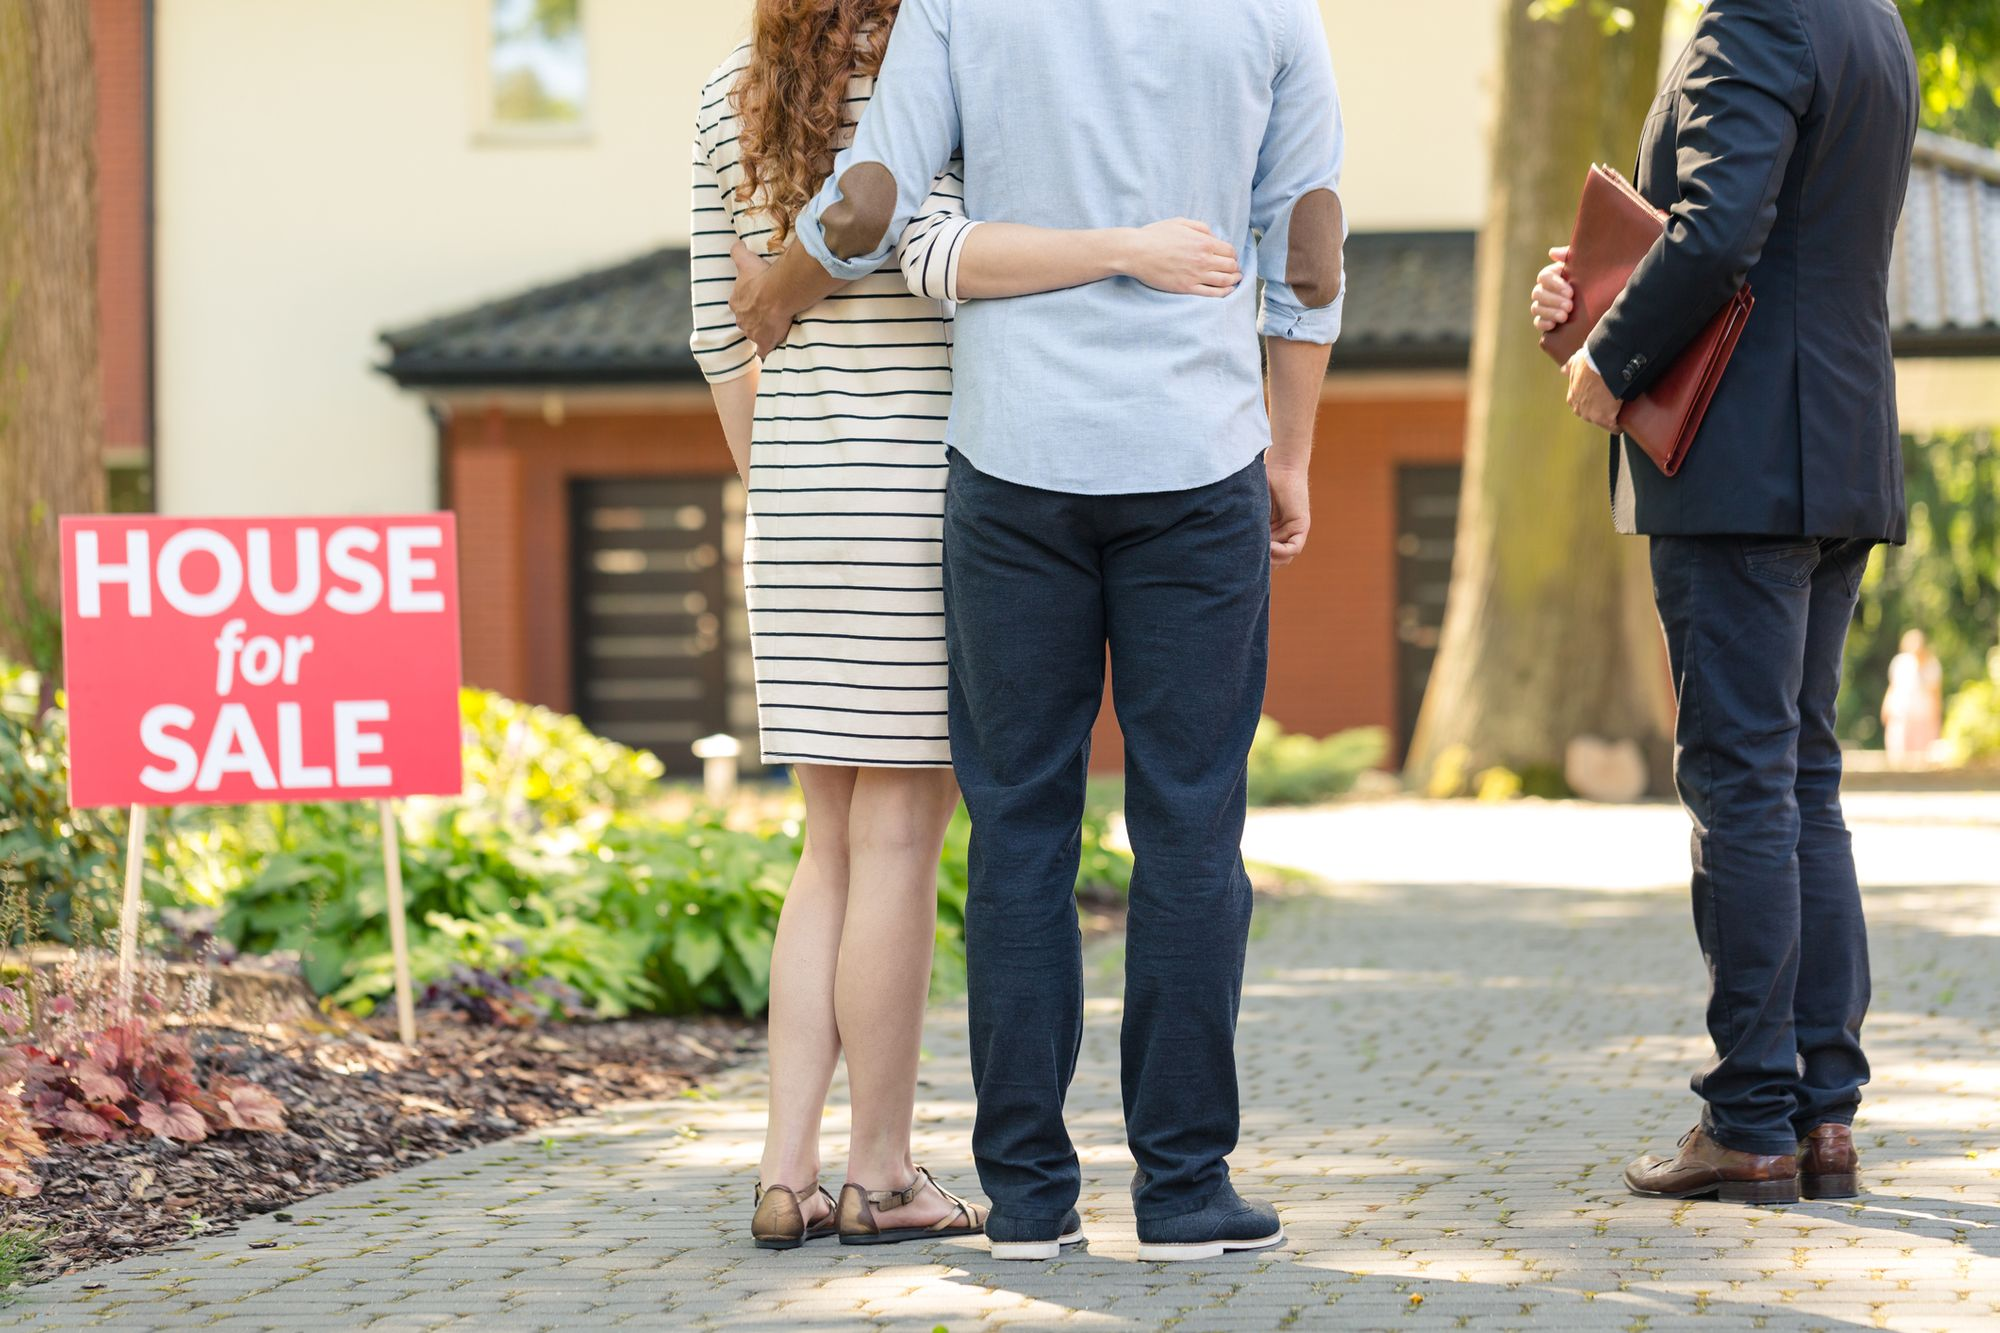 Don't Make These 4 Common Mistakes of First-Time Homebuyers